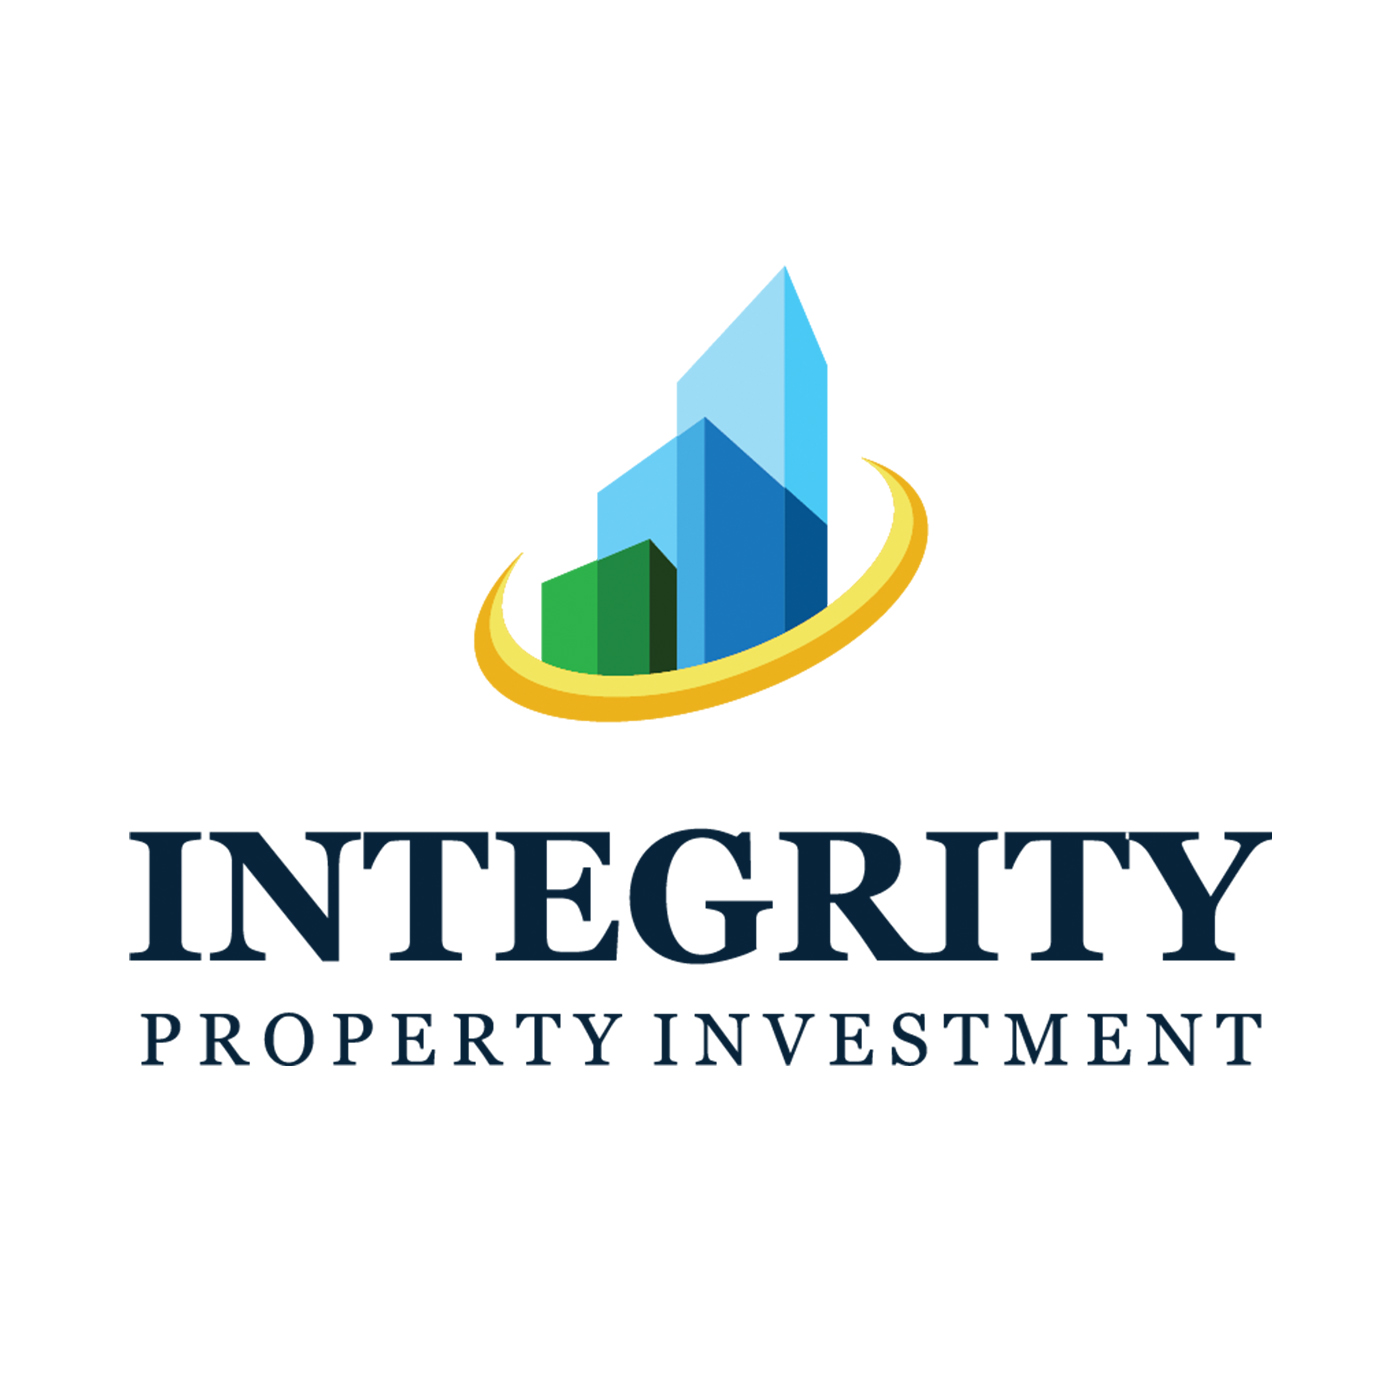 Integrity Property Investment